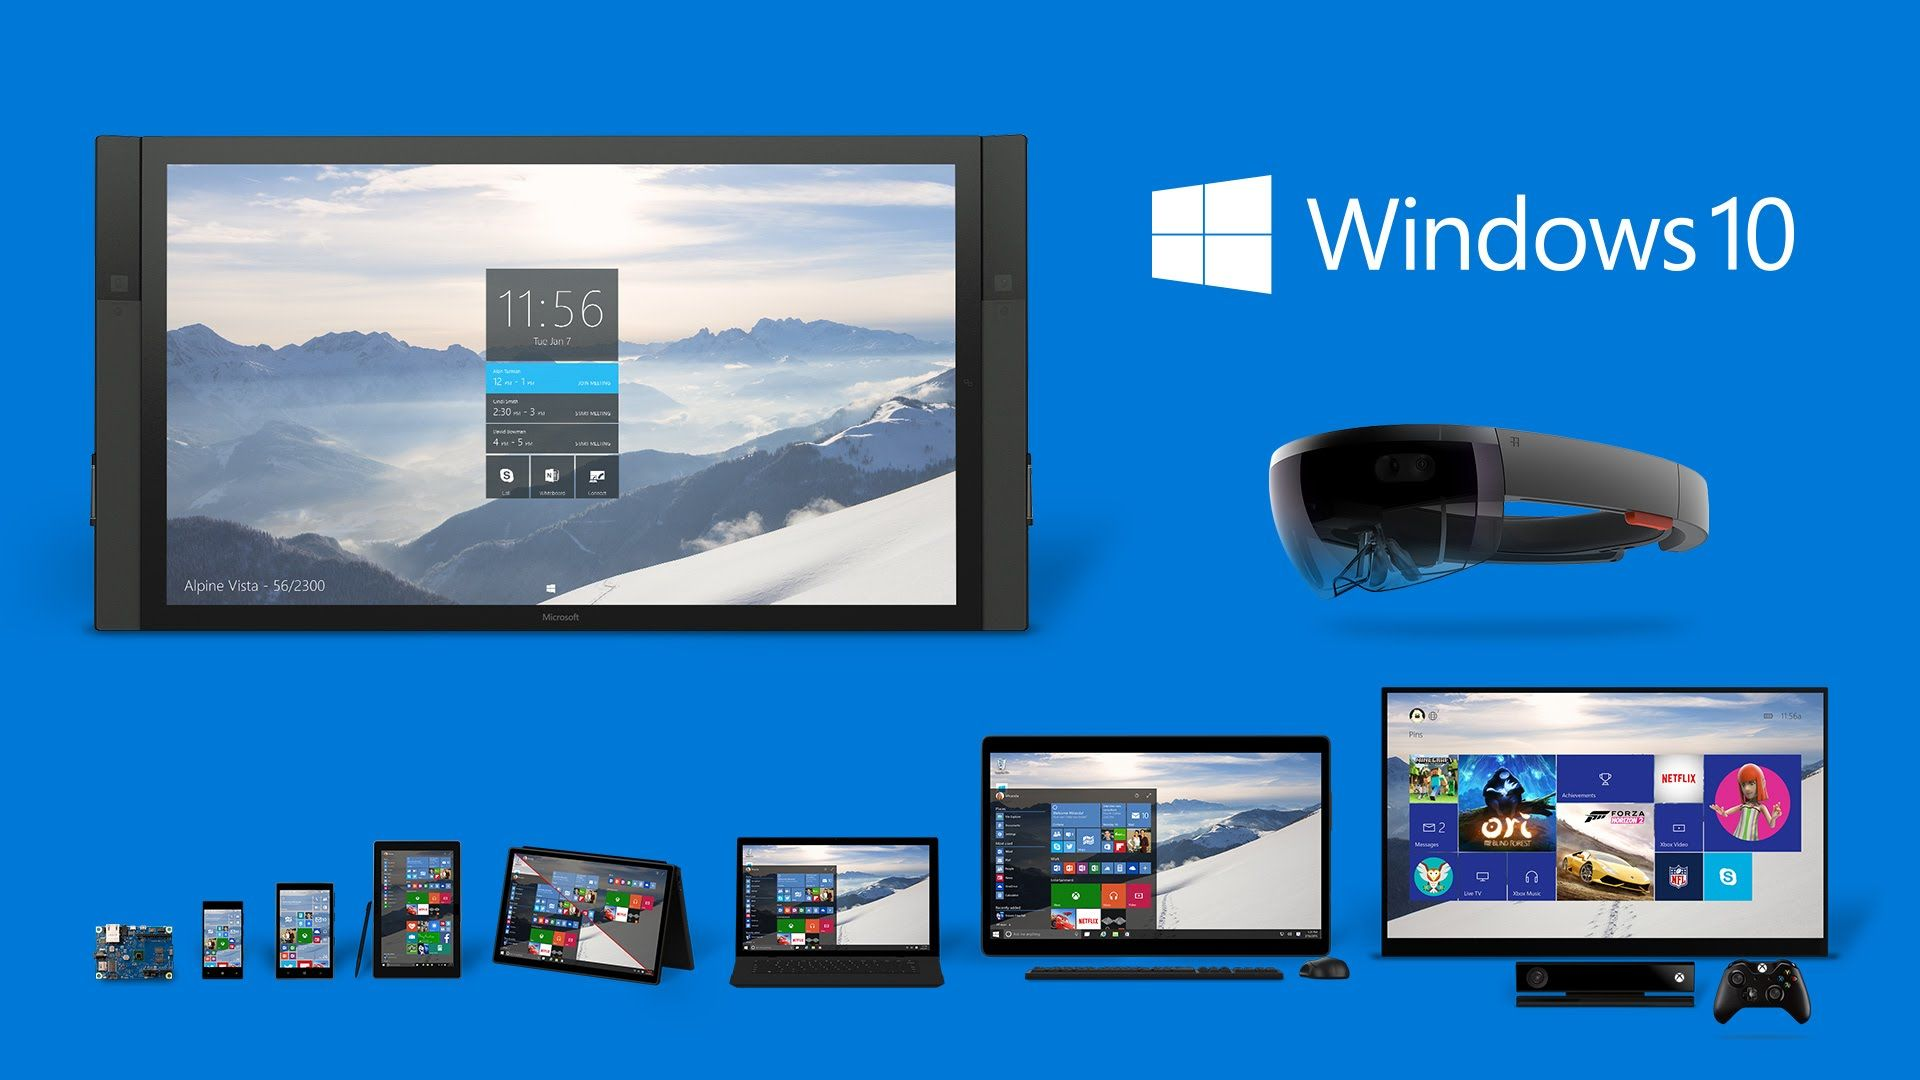 Finalizar Instalación Limpia de Windows 10 | Windows Fácil